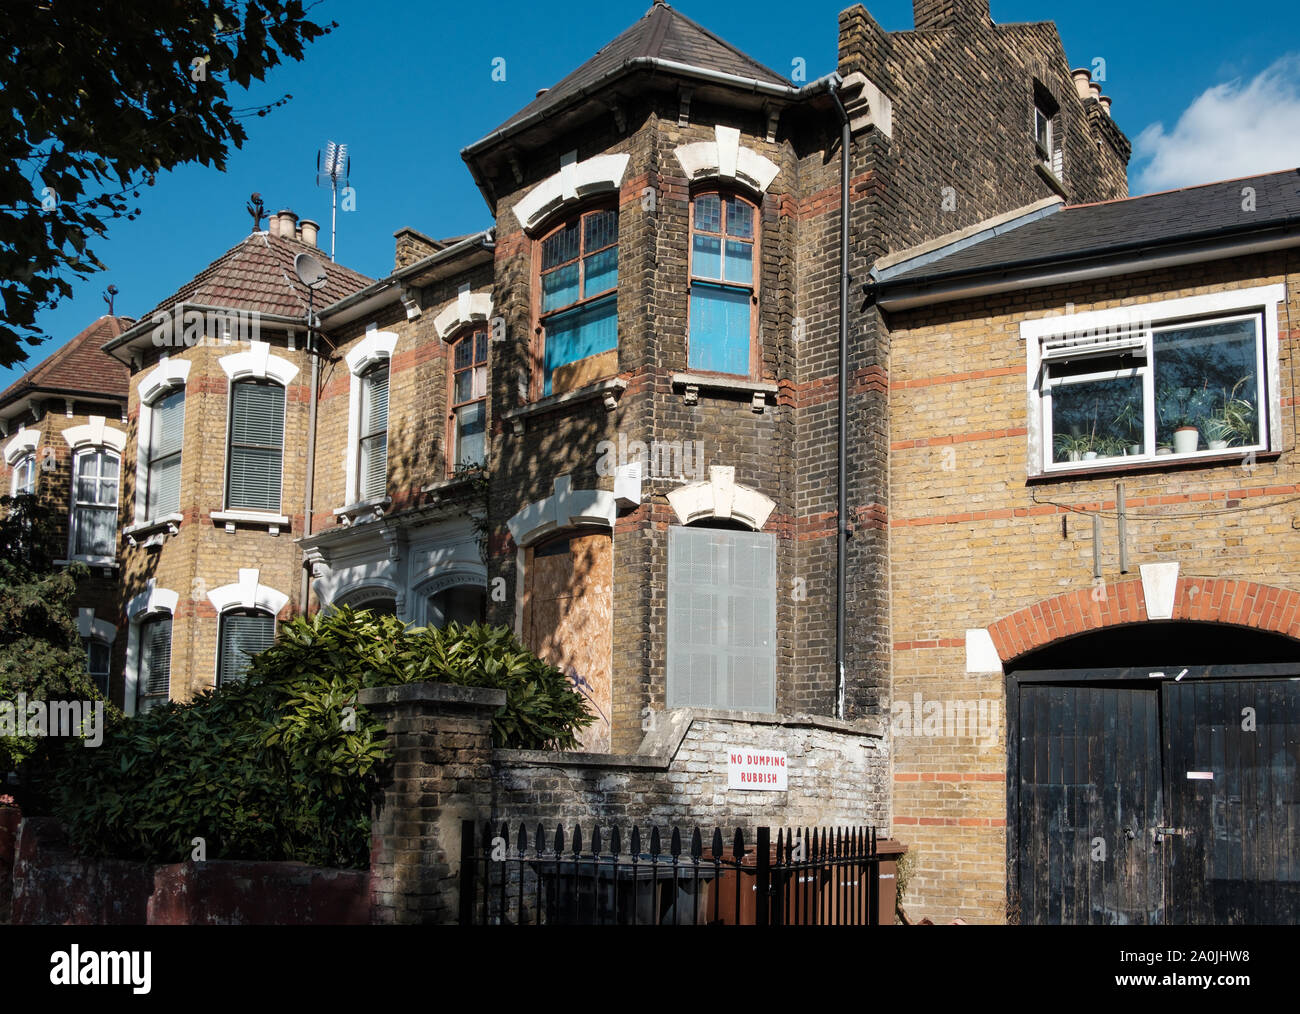 Boarded up derelict housing in Clapton, Hackney, East London, UK Stock Photo